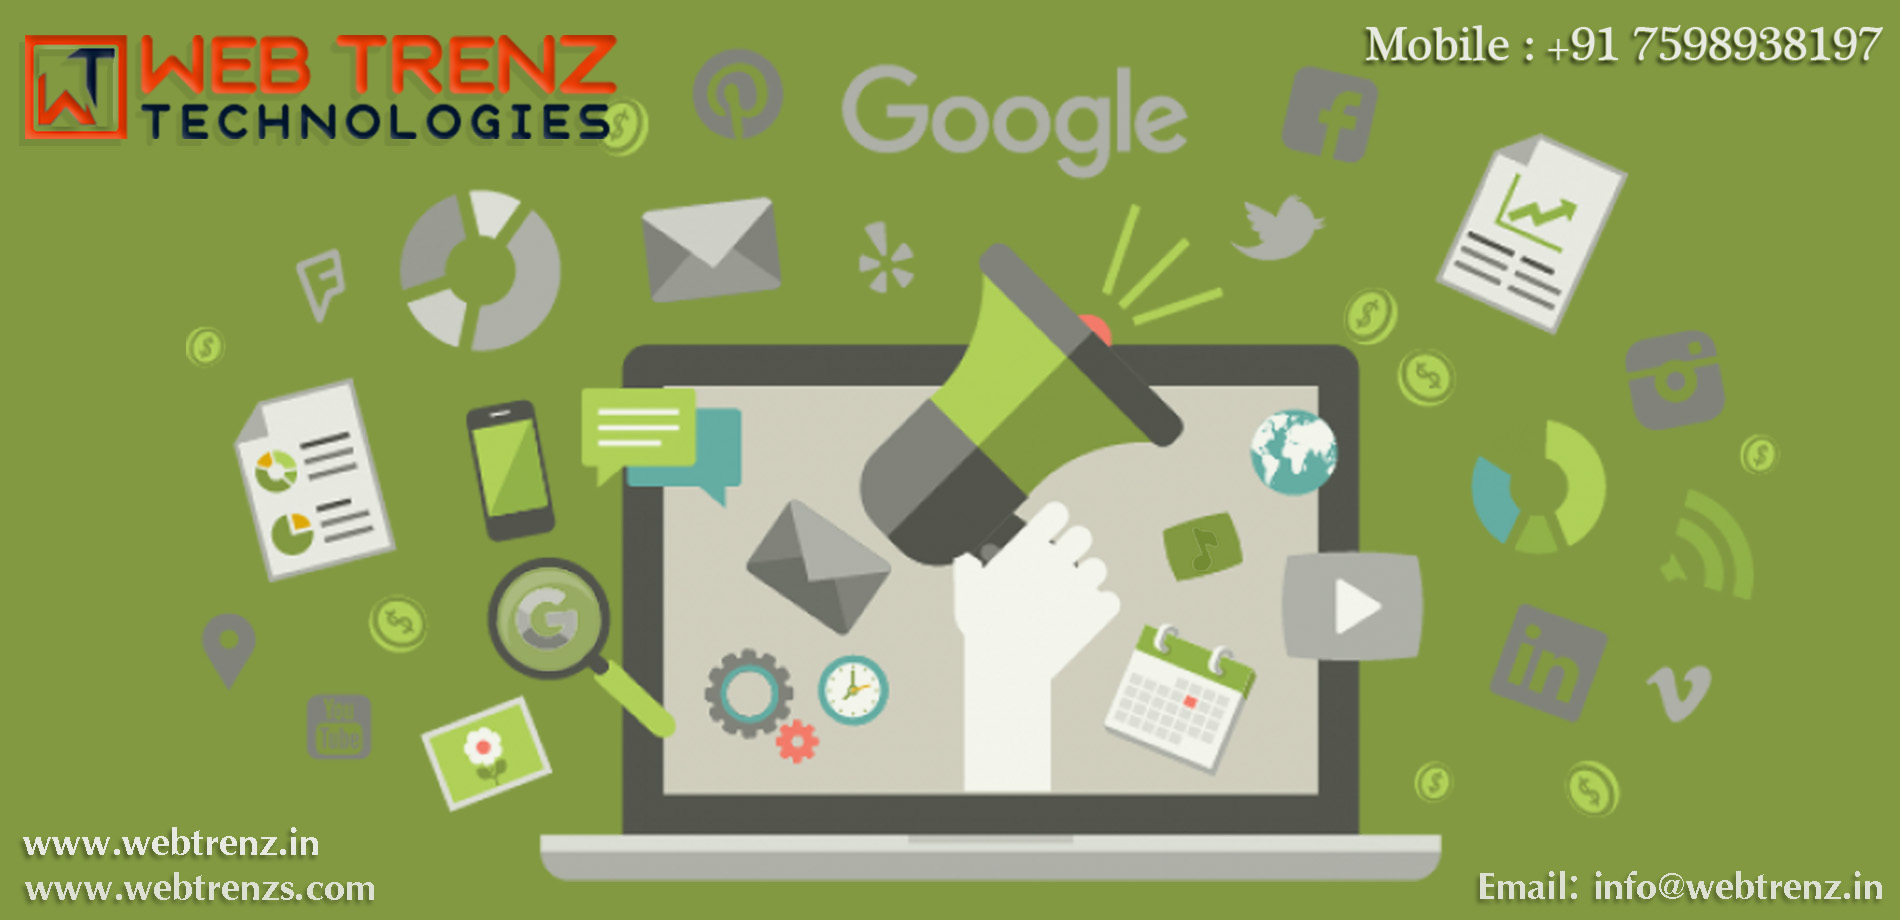 Web Trenz Technologies, Digital Marketing Company In Omr, Digital Marketing Company In Pallavaram, Digital Marketing Company In Tiruvallur